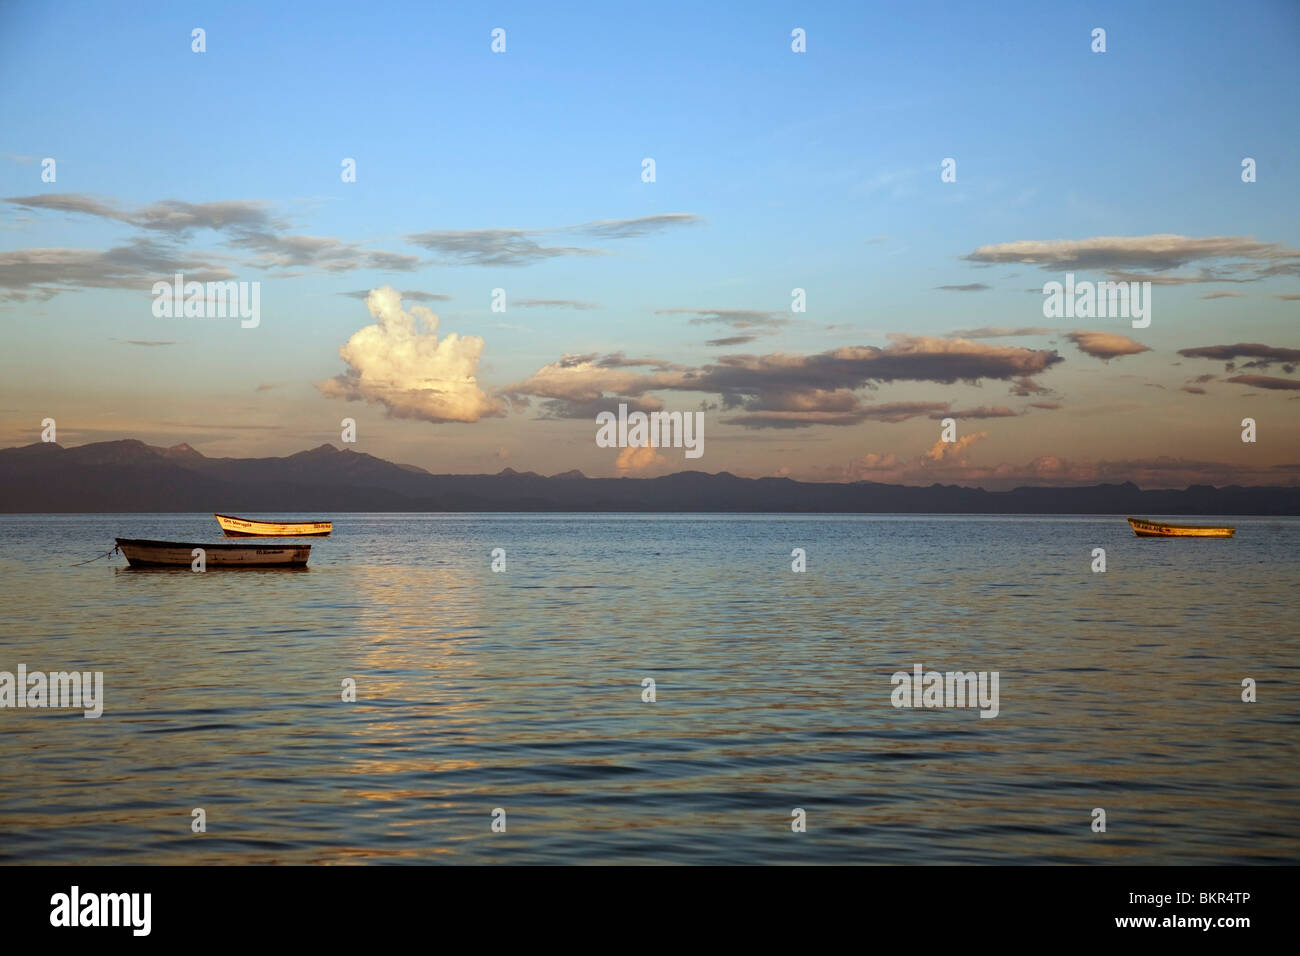 Malawi, Monkey Bay. Boats on the calm waters of Lake Malawi at sunset. - Stock Image